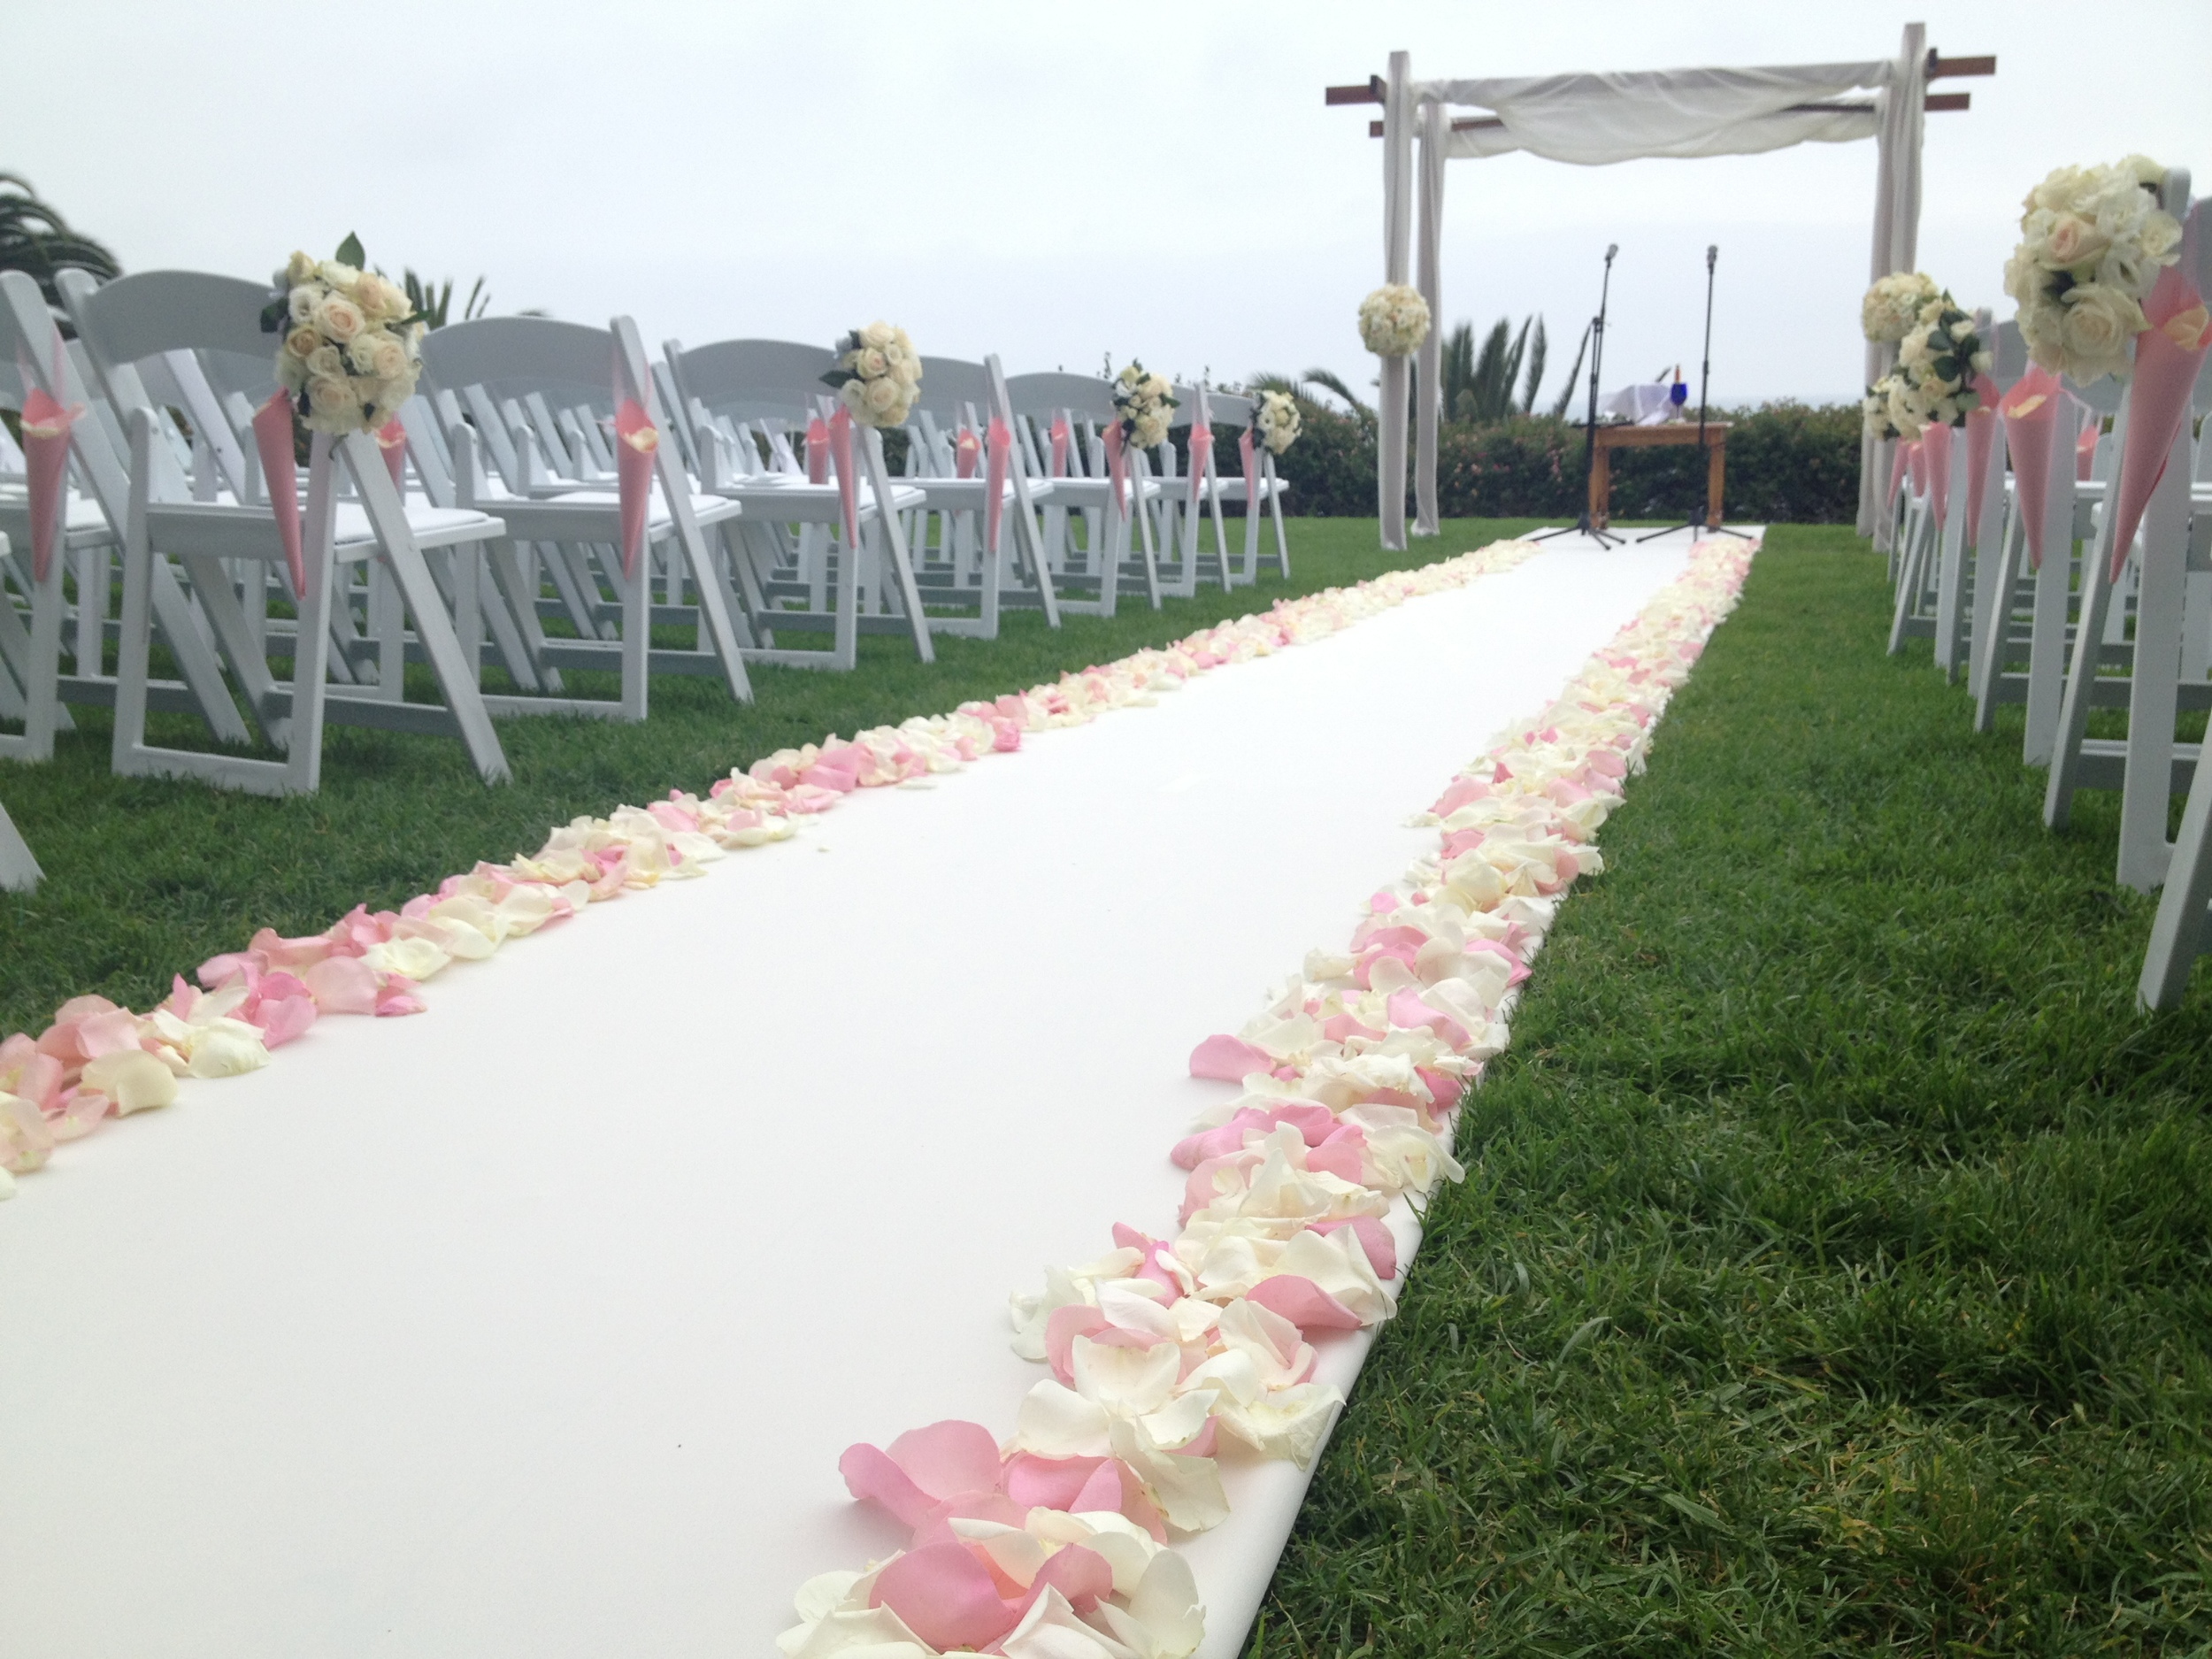 The completed ceremony site with Chuppah, aisle runner and petals, chair decor and paper cones filled with white roses petals. Now on to the reception.